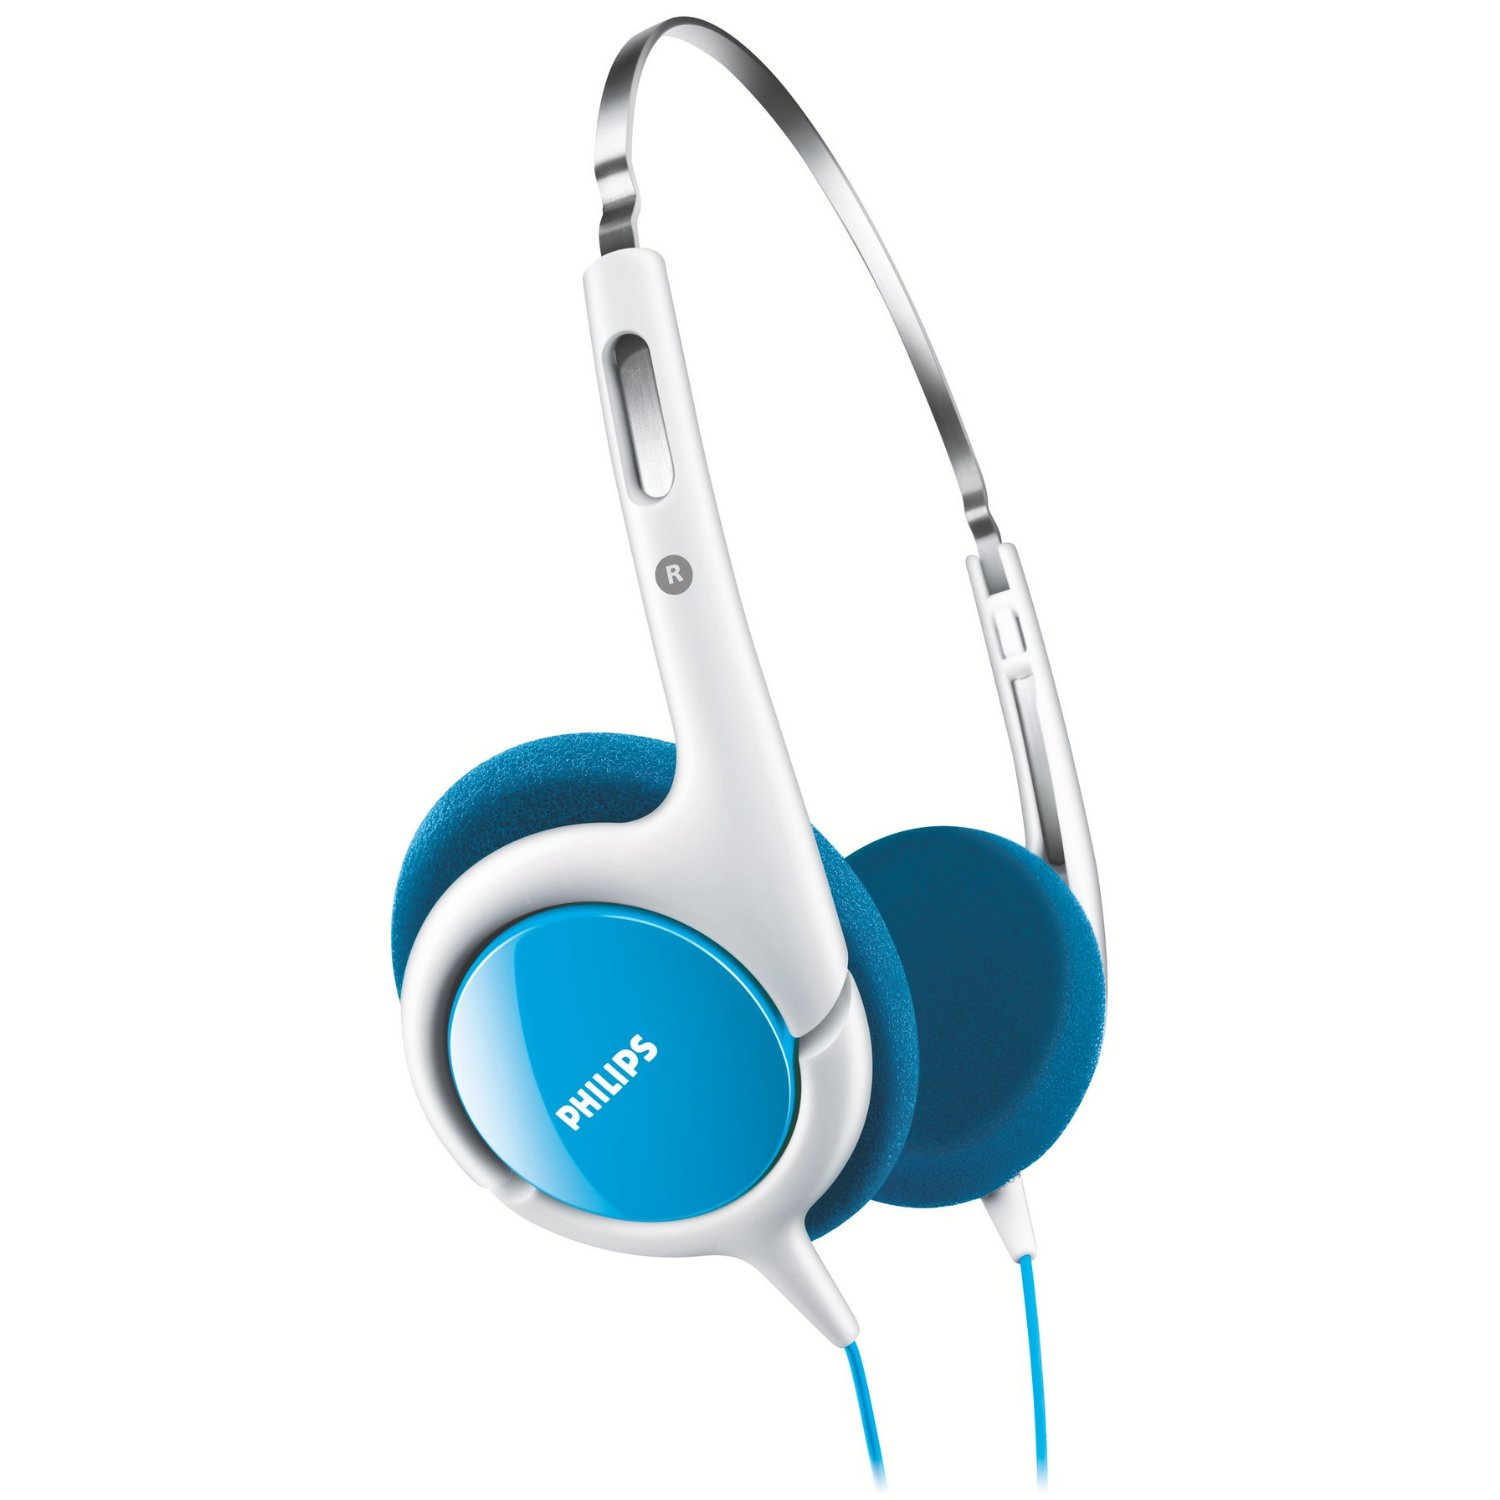 Philips SHK 1030